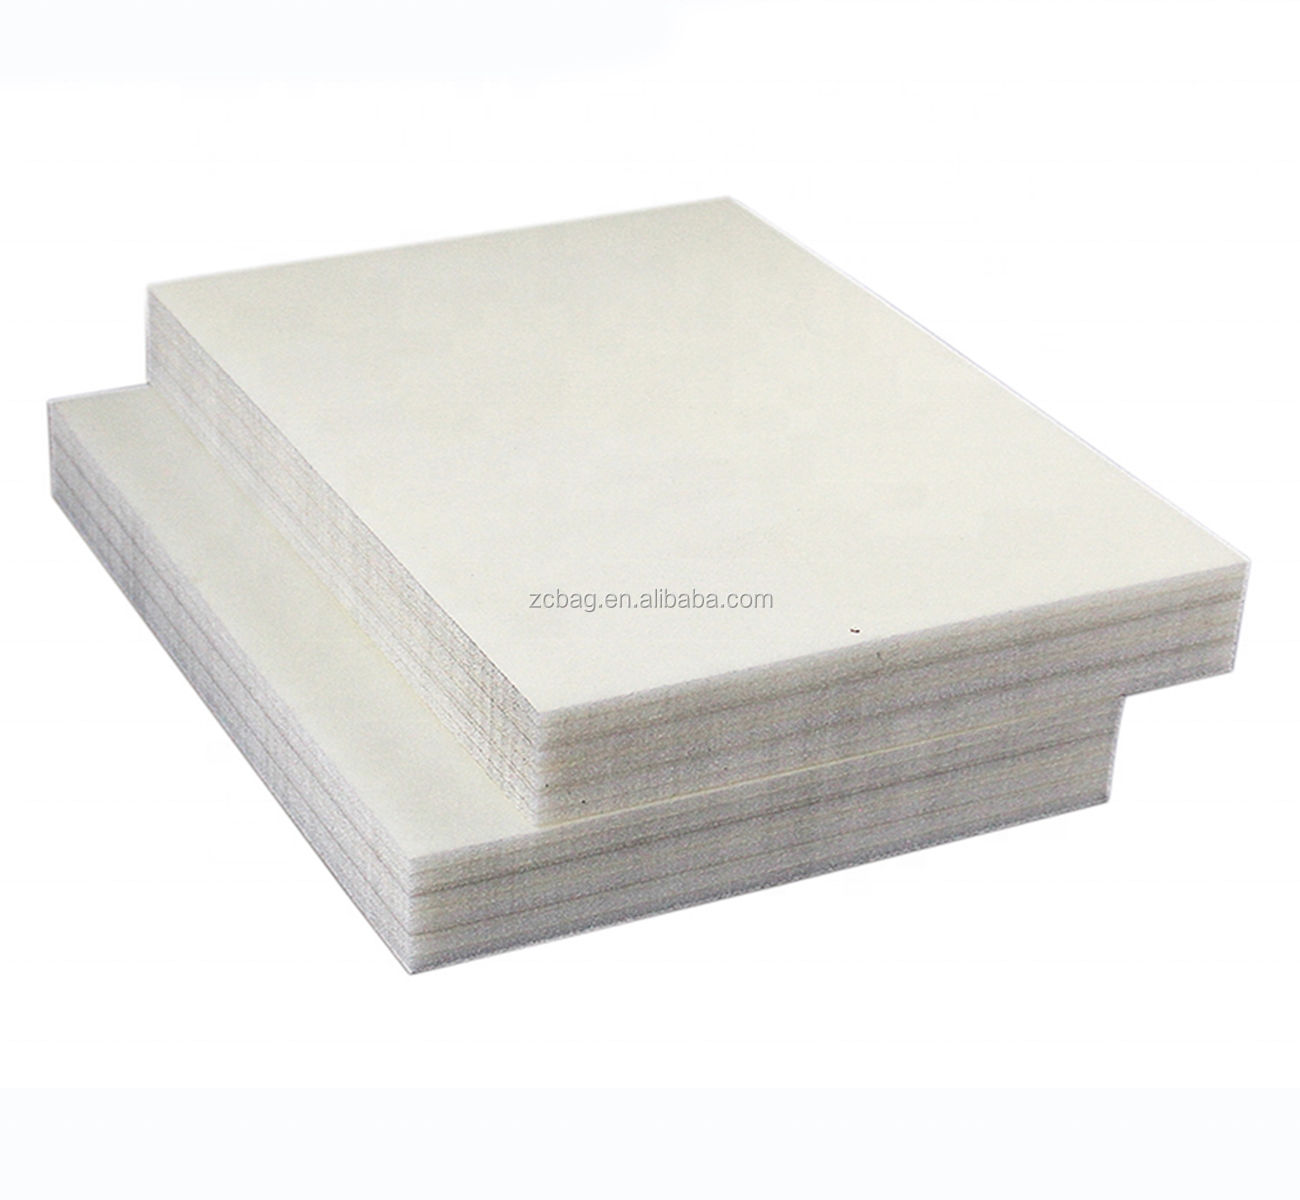 Low density PE XPE foam rolls sheets thermal insulation padding cross-linked closed cell foam sheet